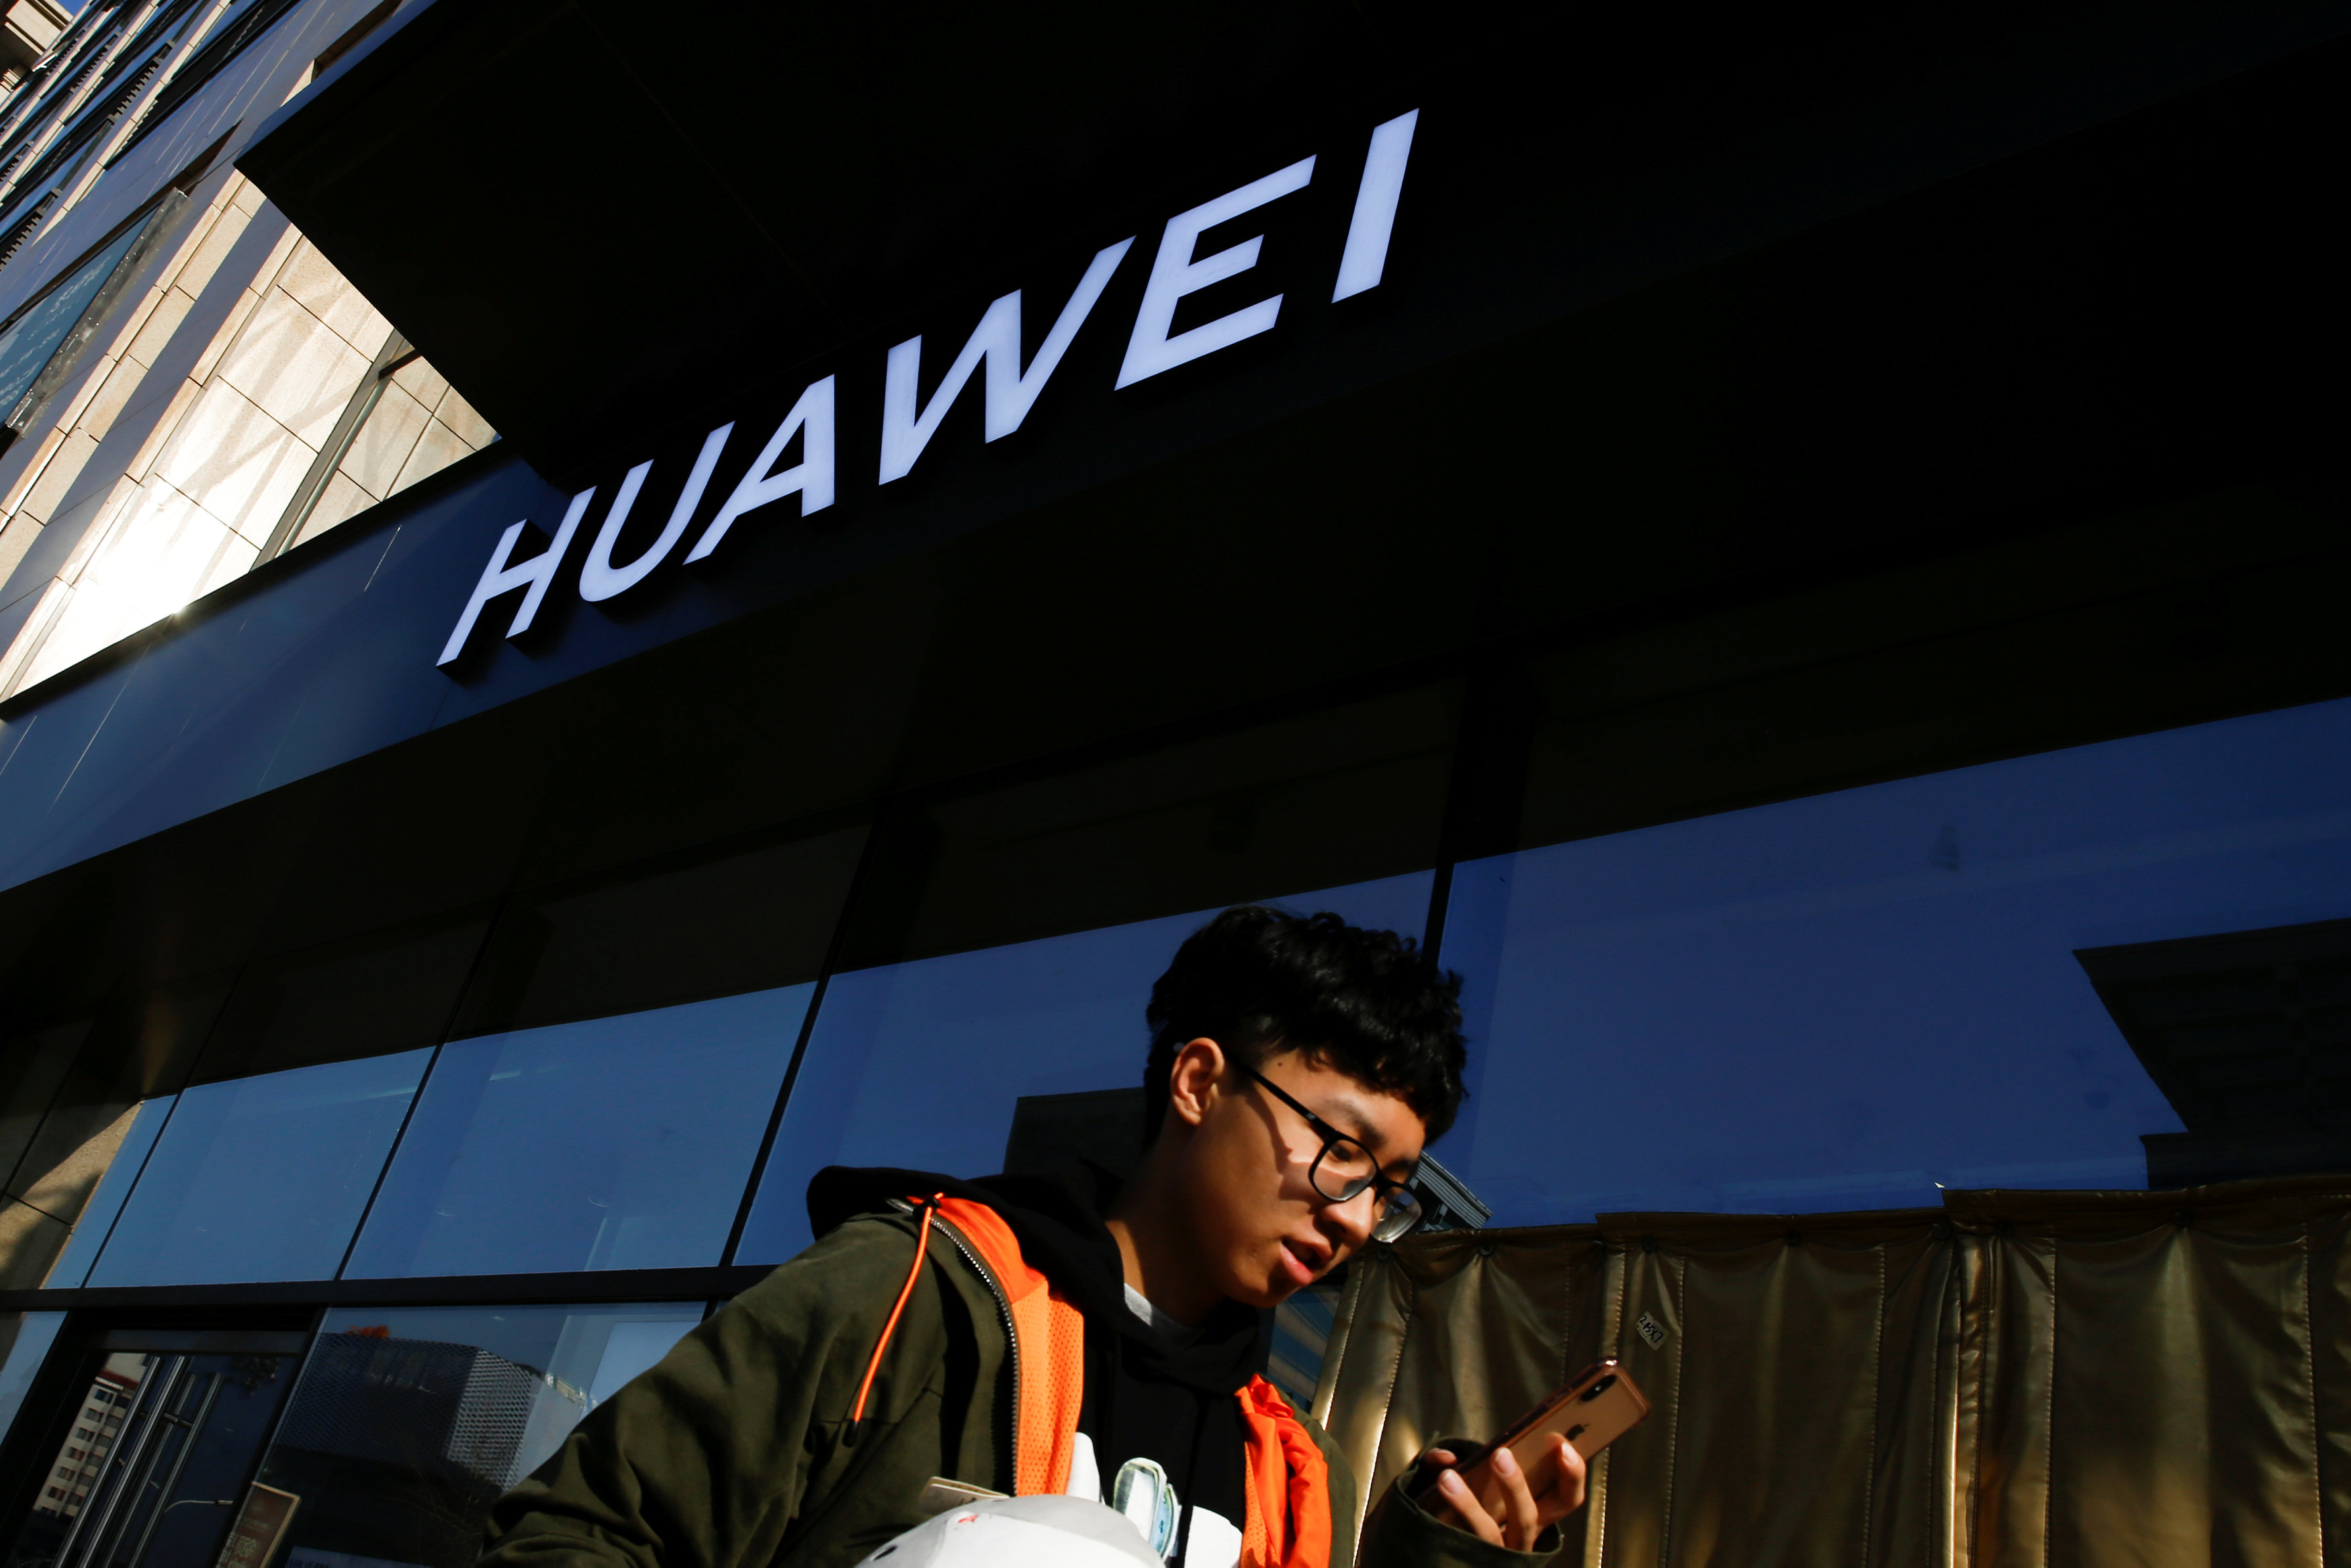 Huawei will launch a proprietary mobile operating system later this year or in early 2020, reports suggest. Photo: Reuters